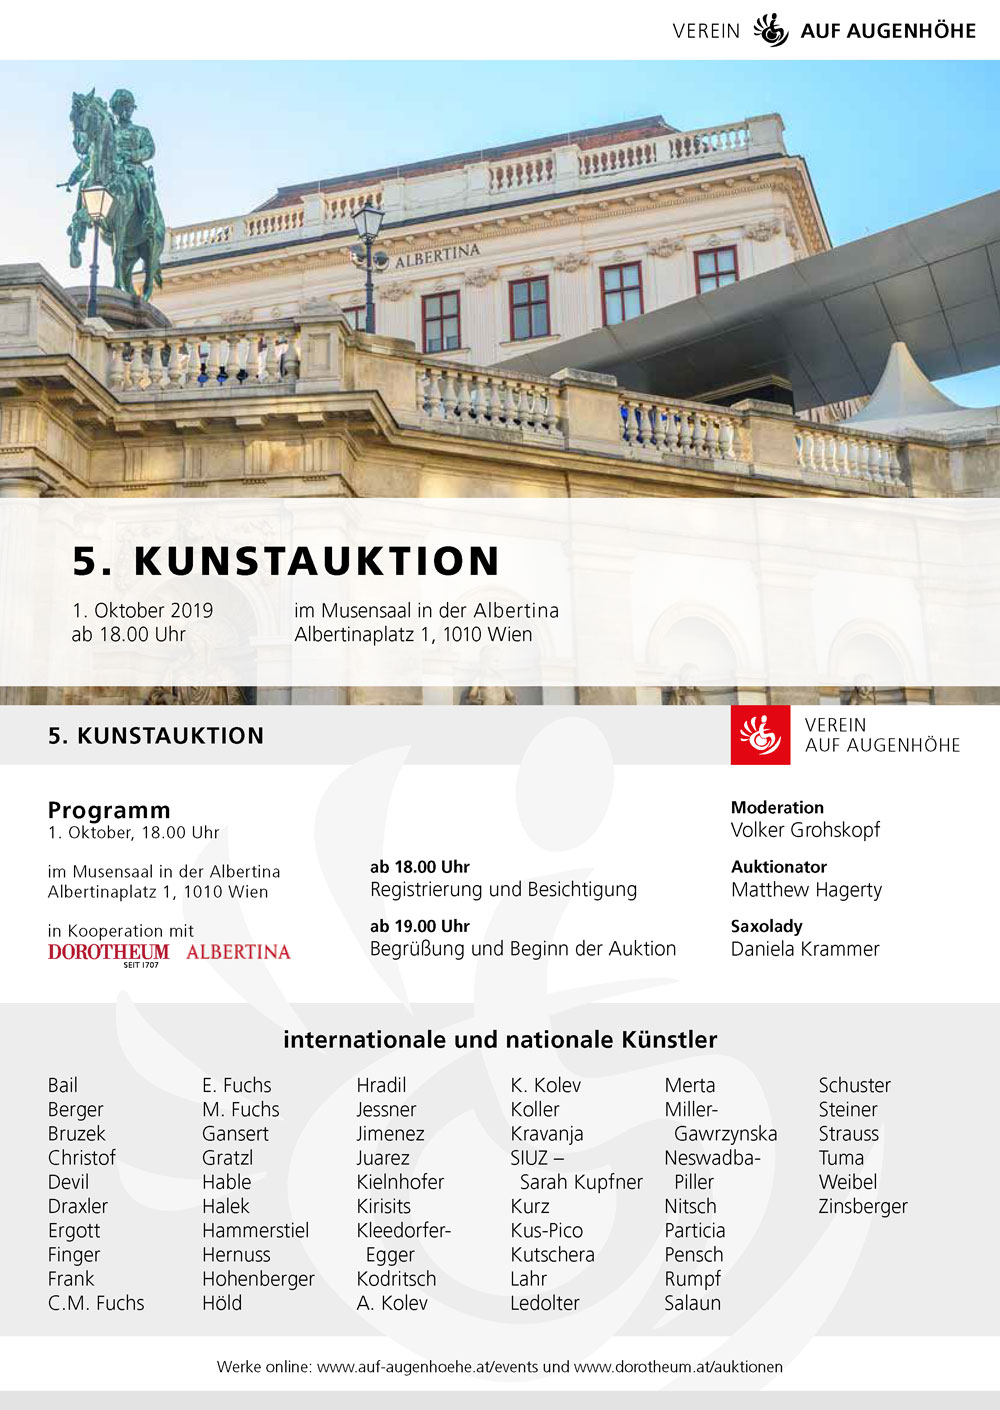 kunstauktion in der albertina